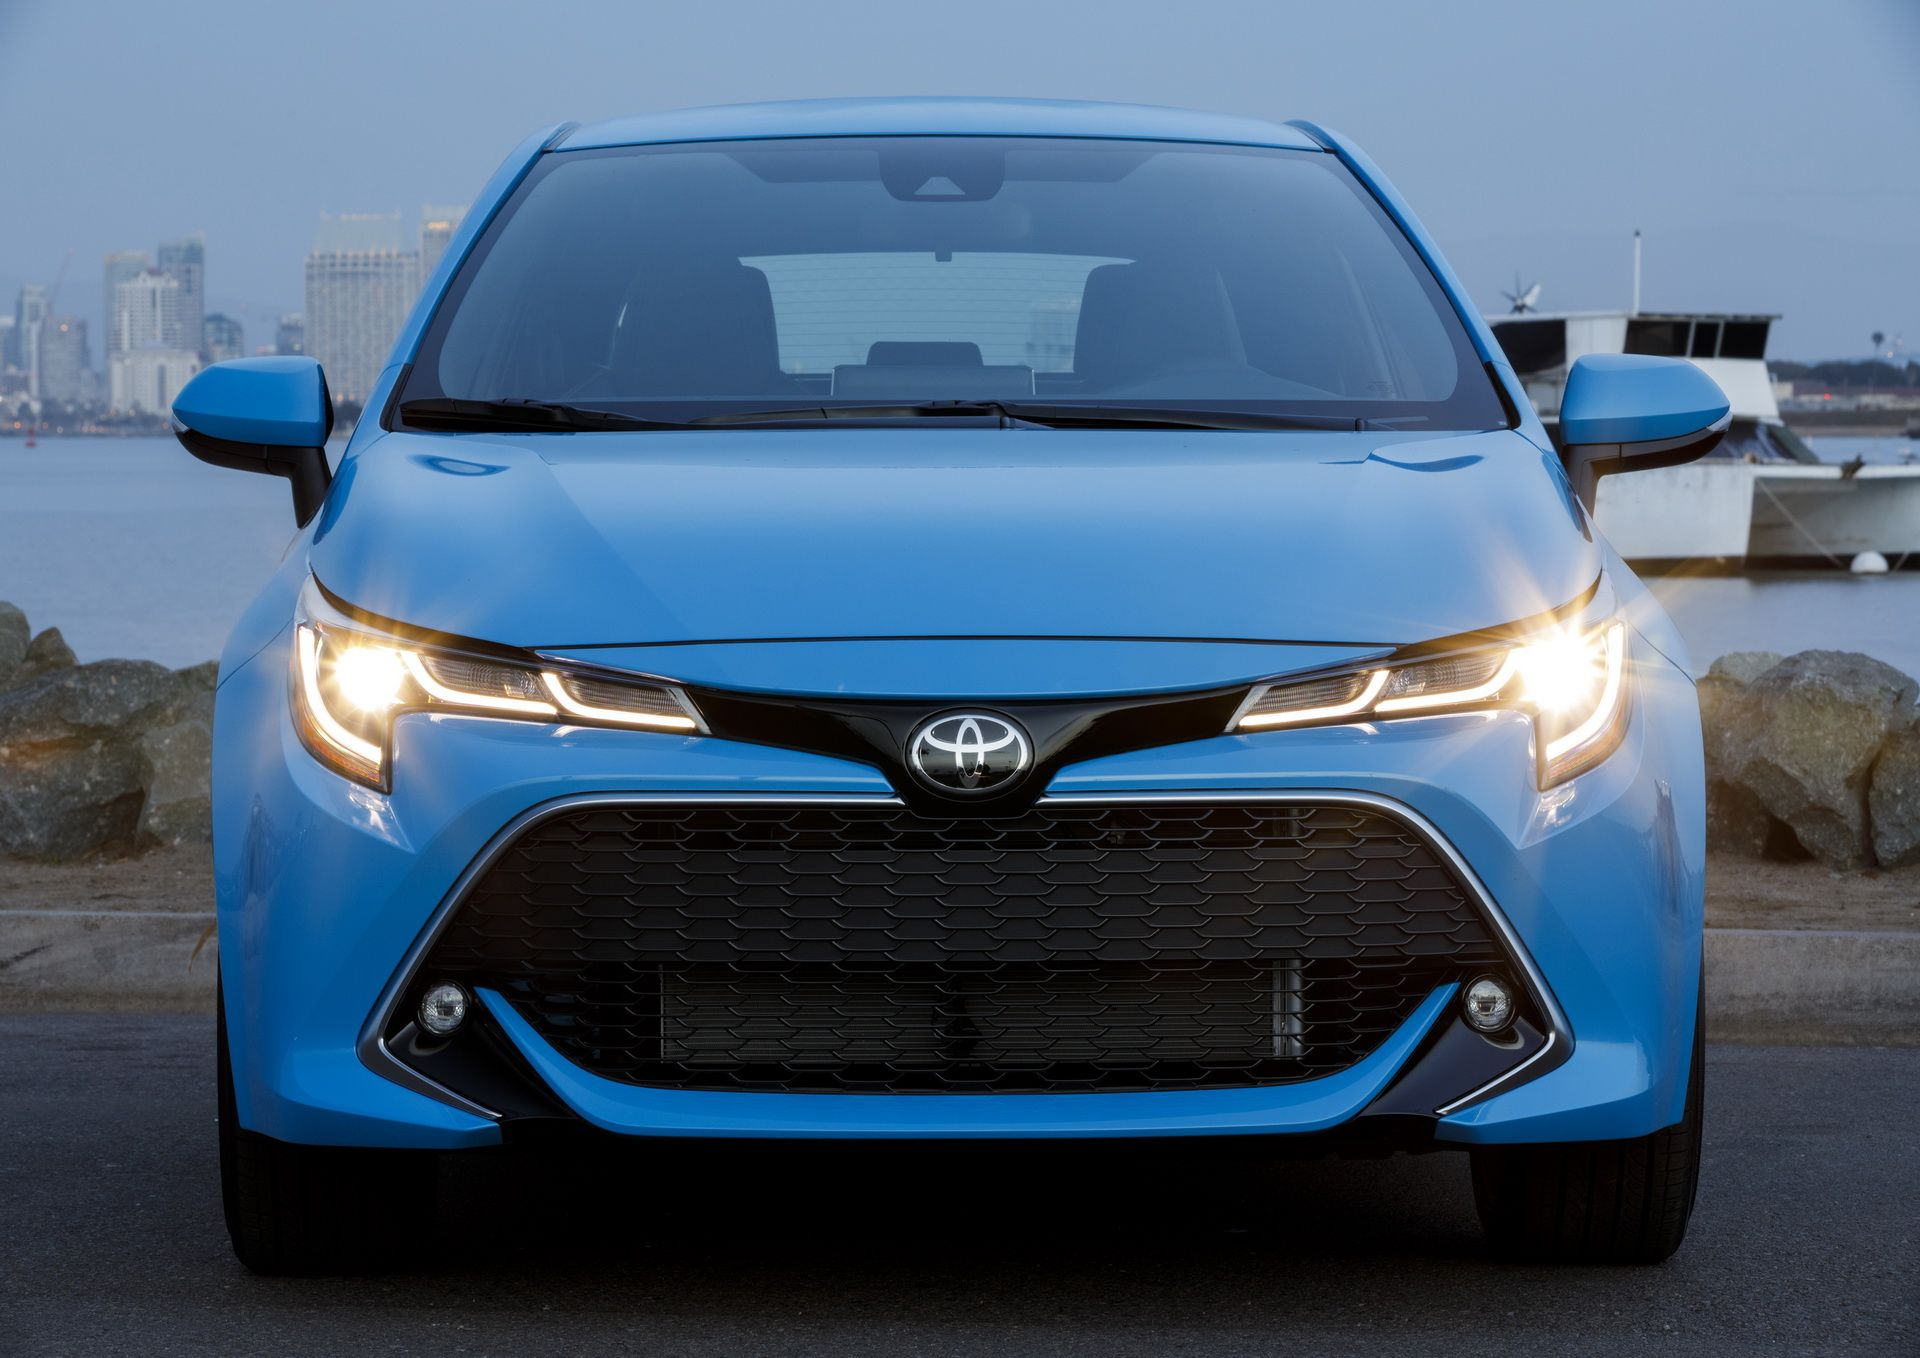 new toyota auris renamed 2019 toyota corolla hatchback. Black Bedroom Furniture Sets. Home Design Ideas